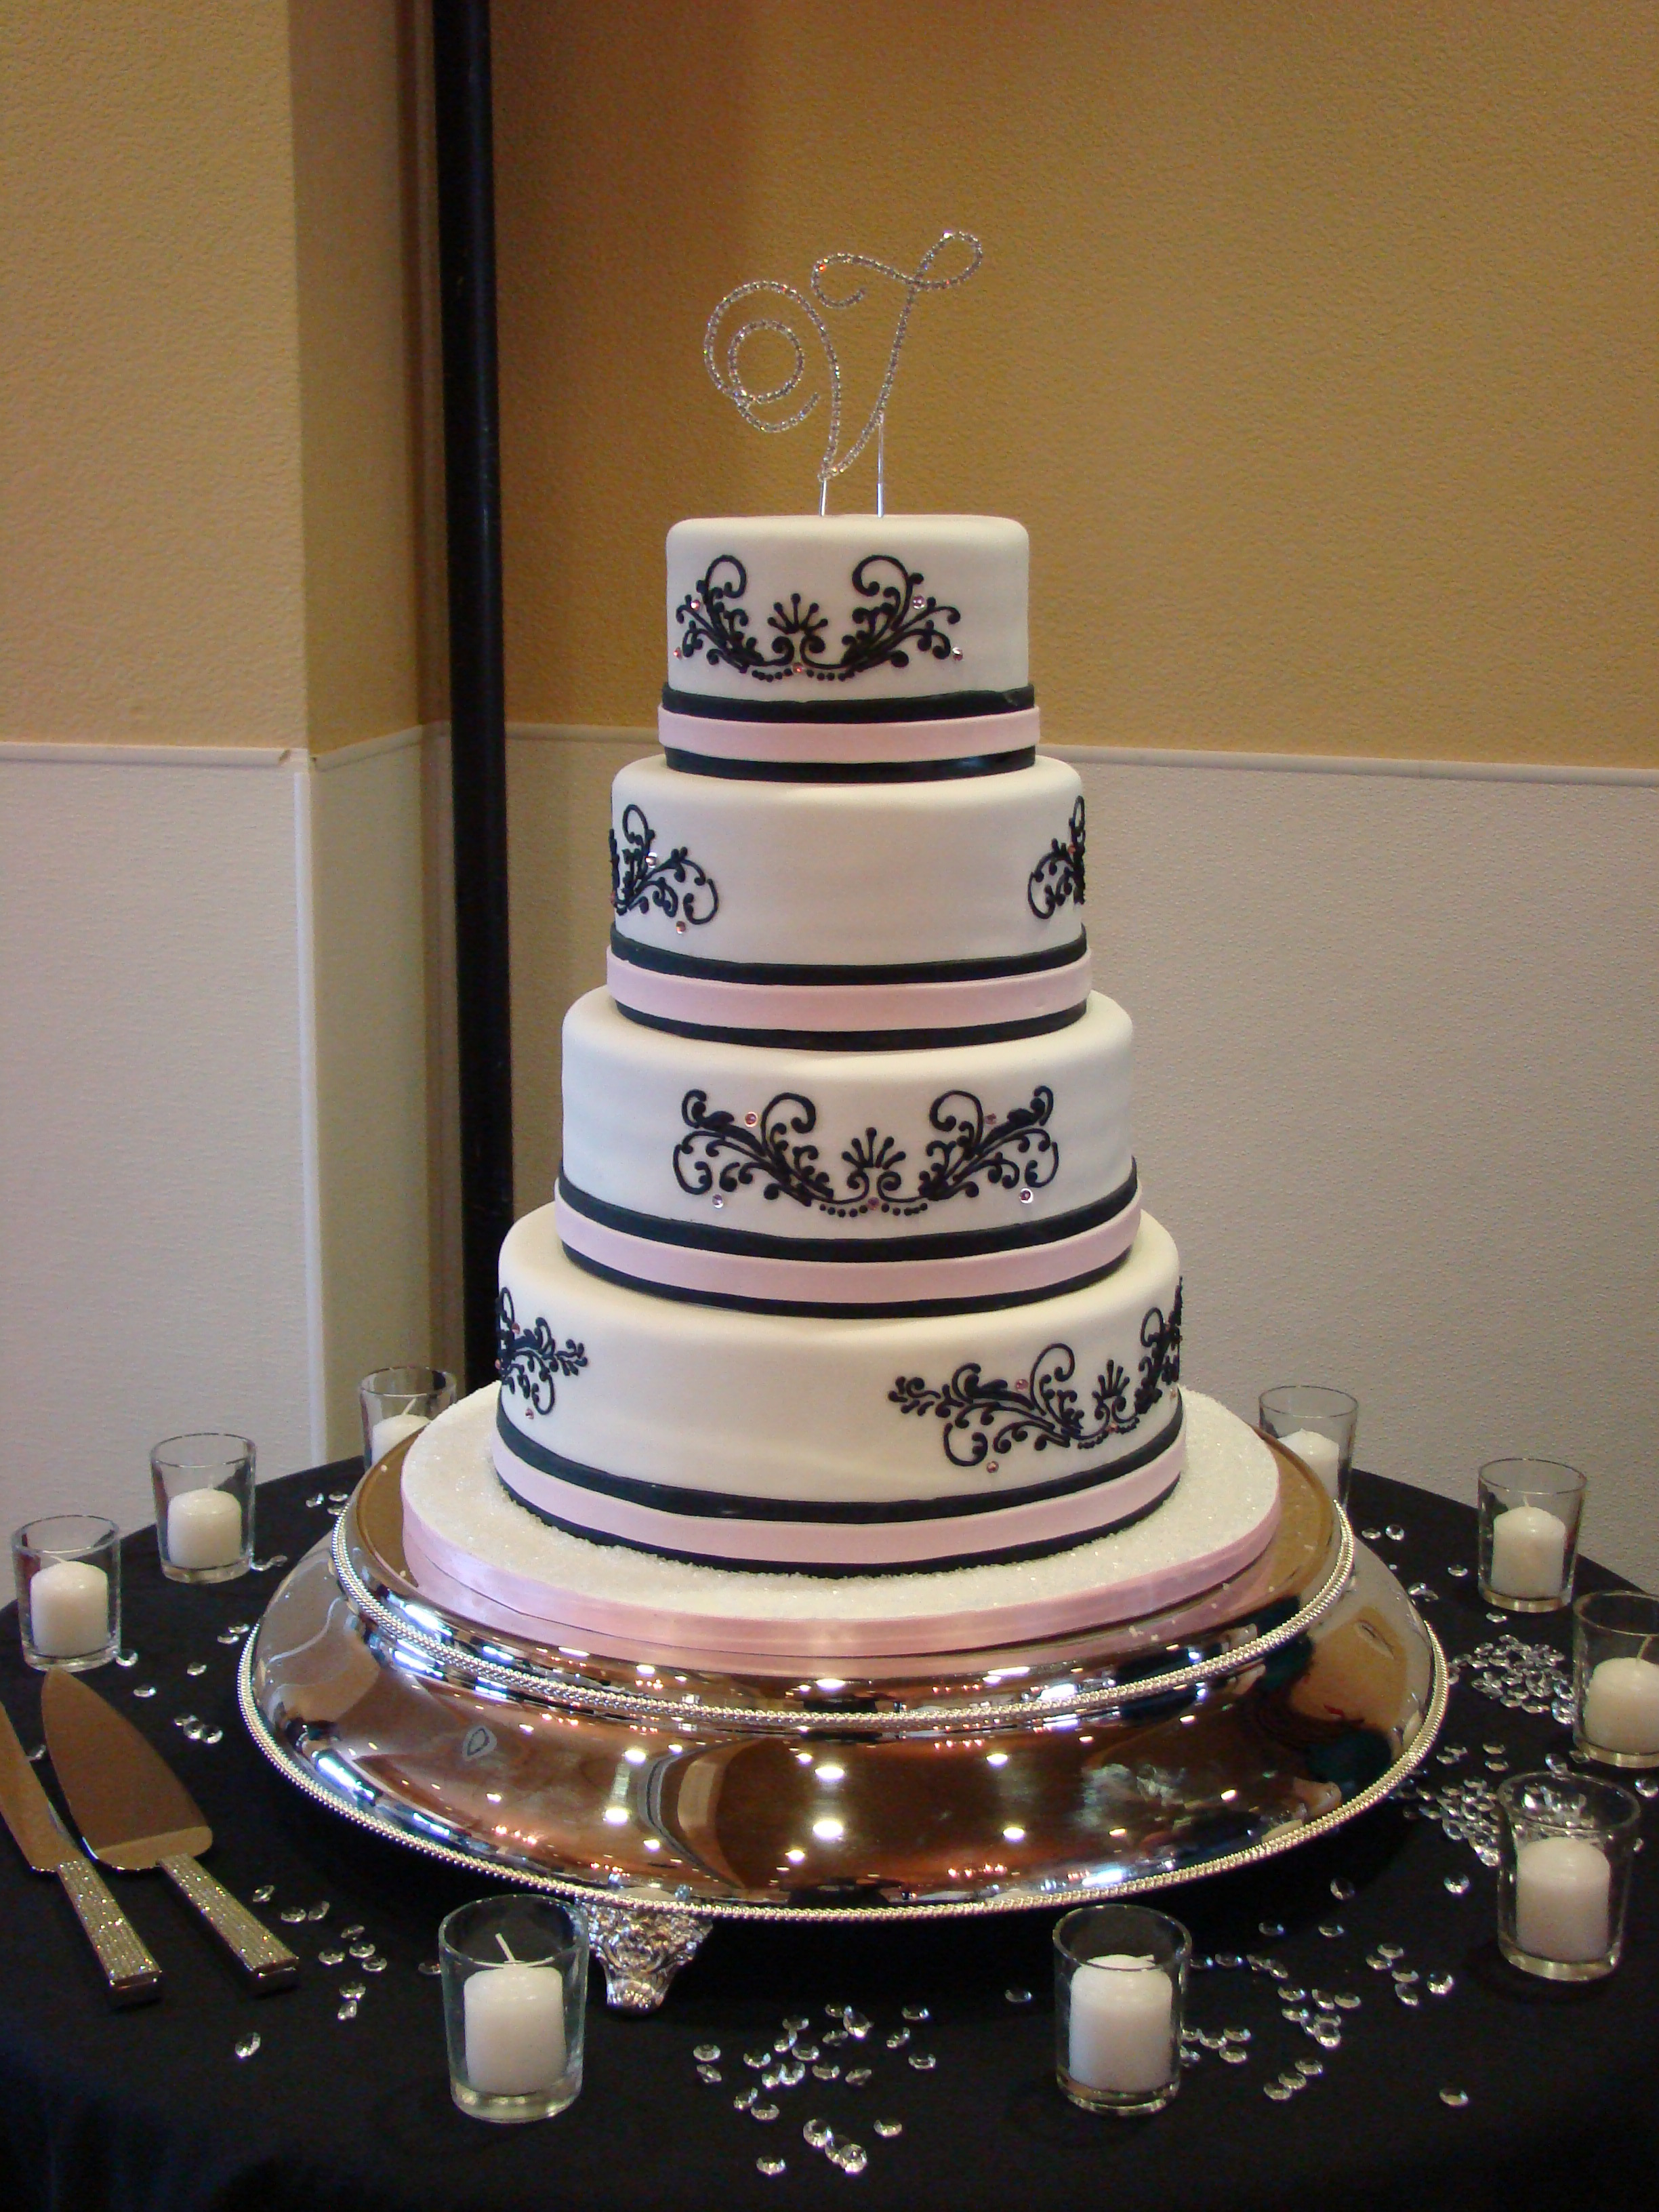 Cakes, white, pink, black, cake, Sweet, By, Rebecca, Sweet cakes by rebecca